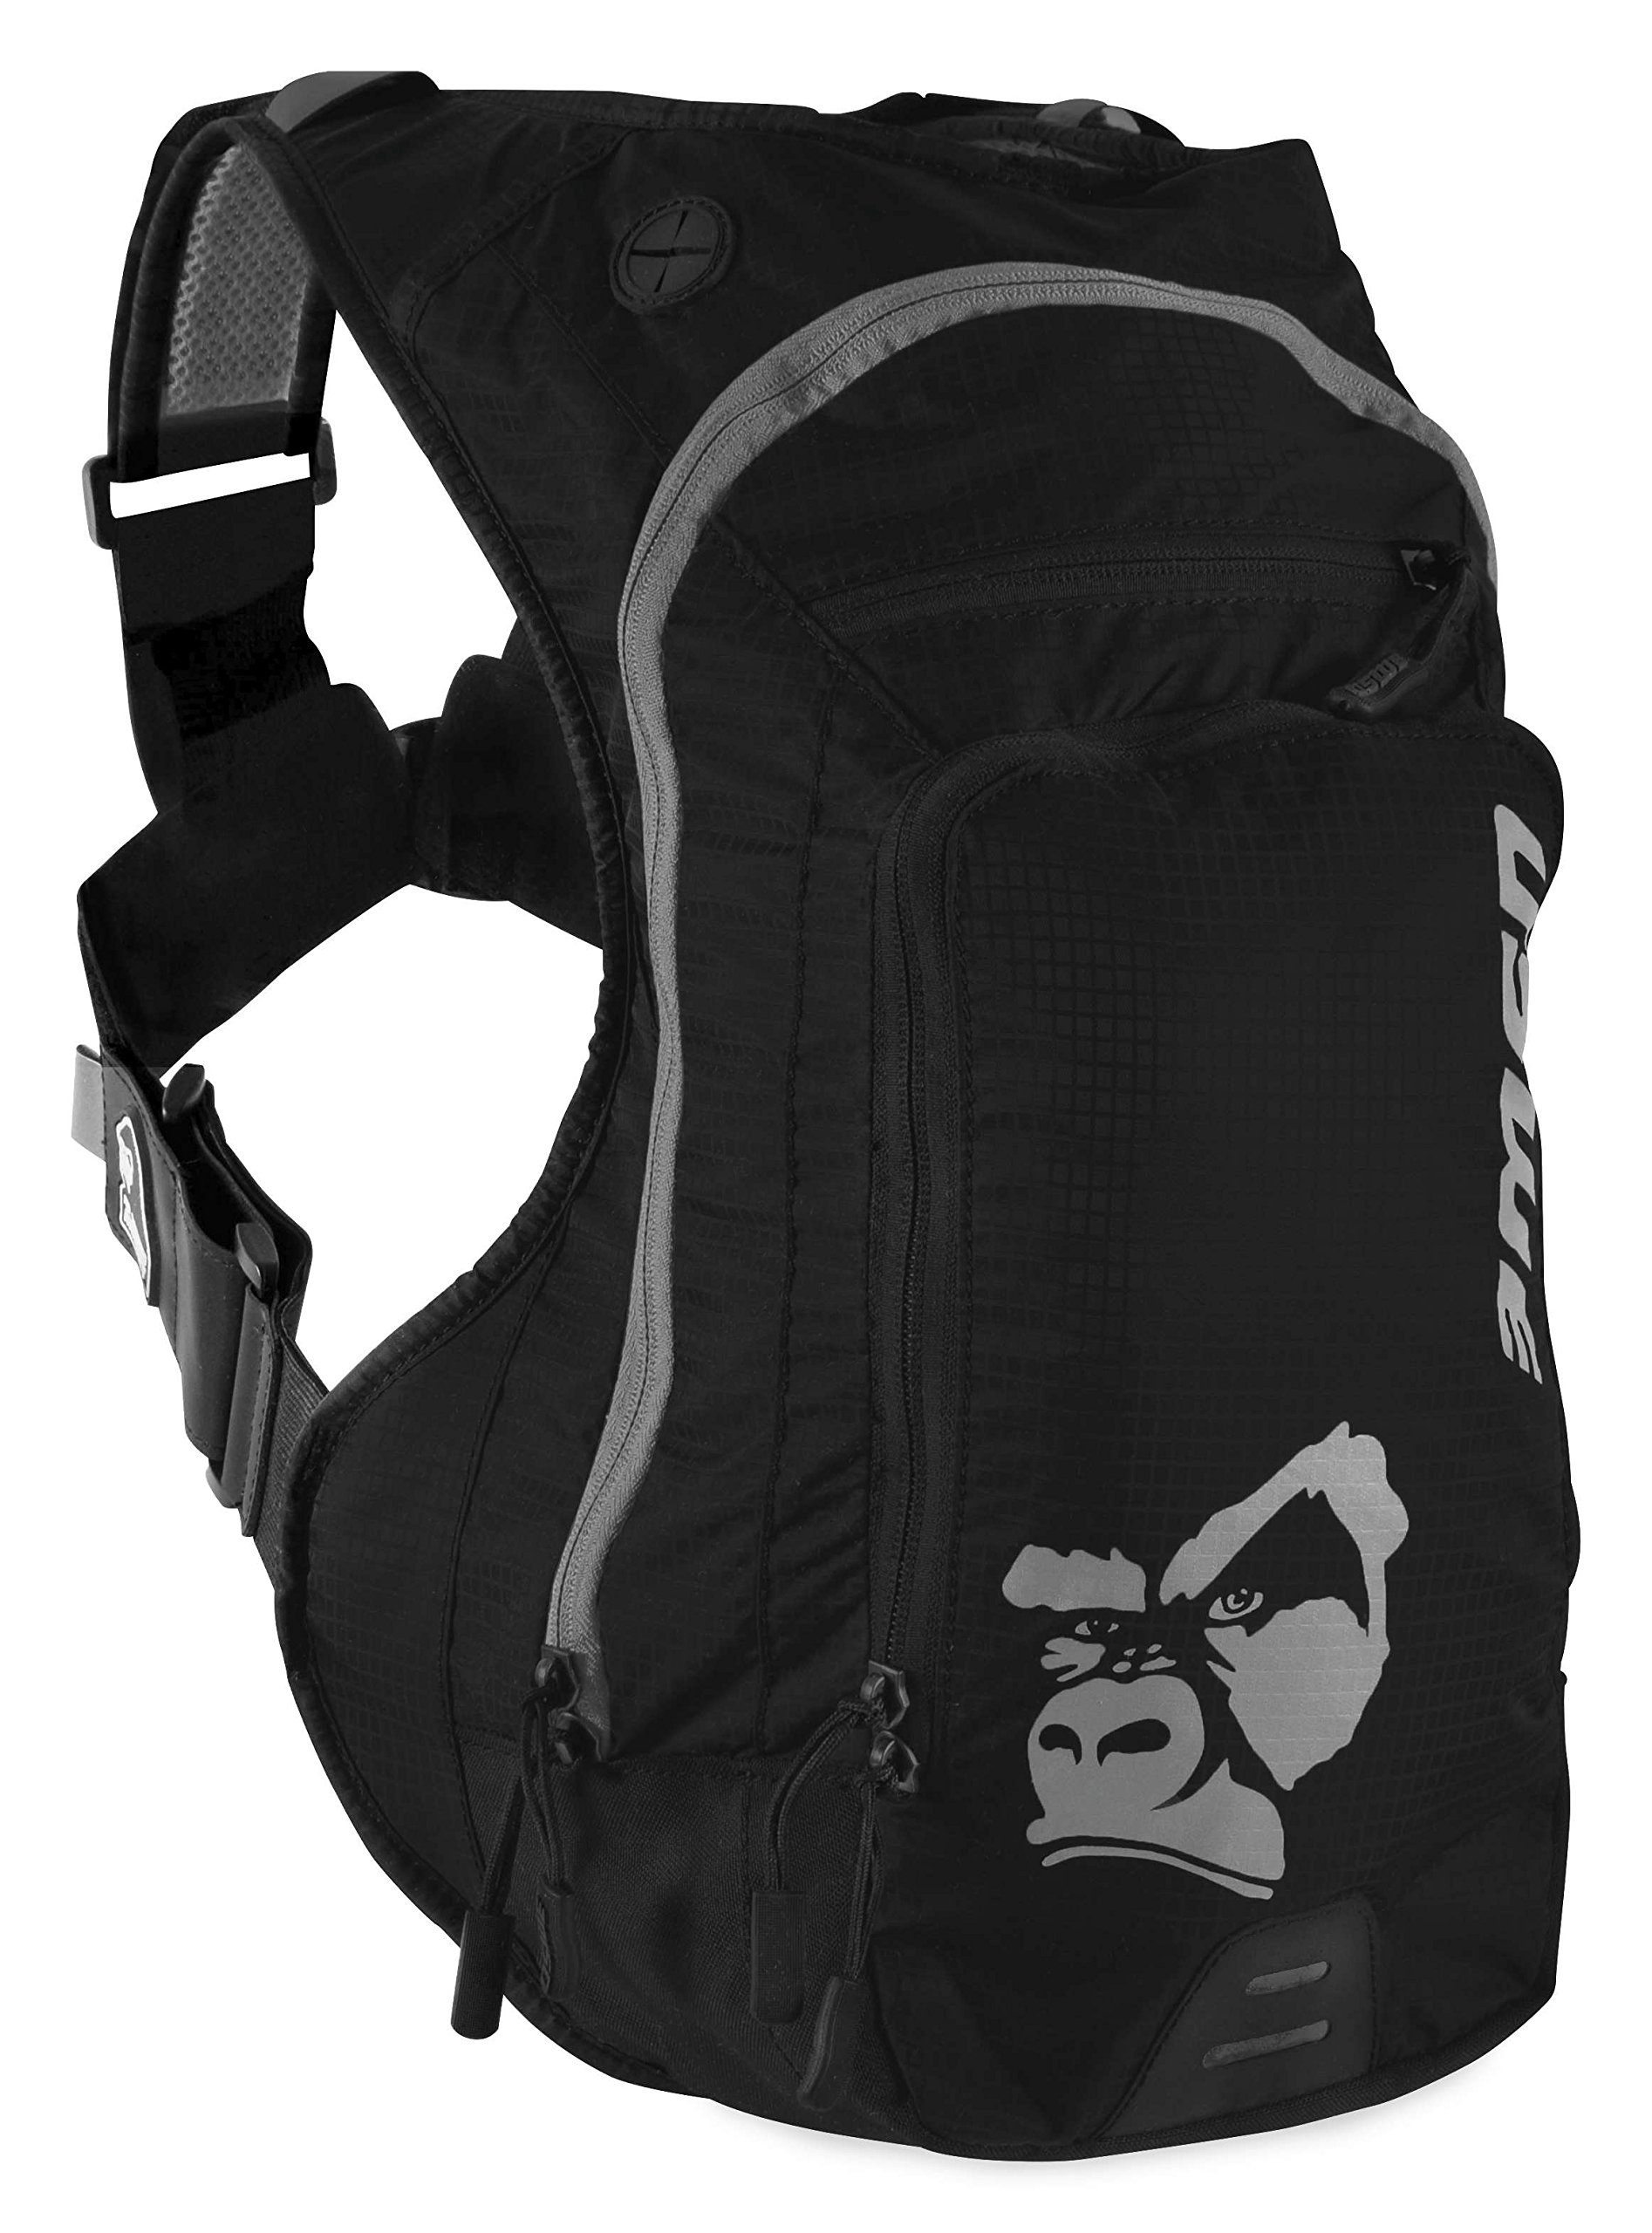 Uswe Black Ranger - 9 Litre Hydration Pack (Default , Black) by USWE